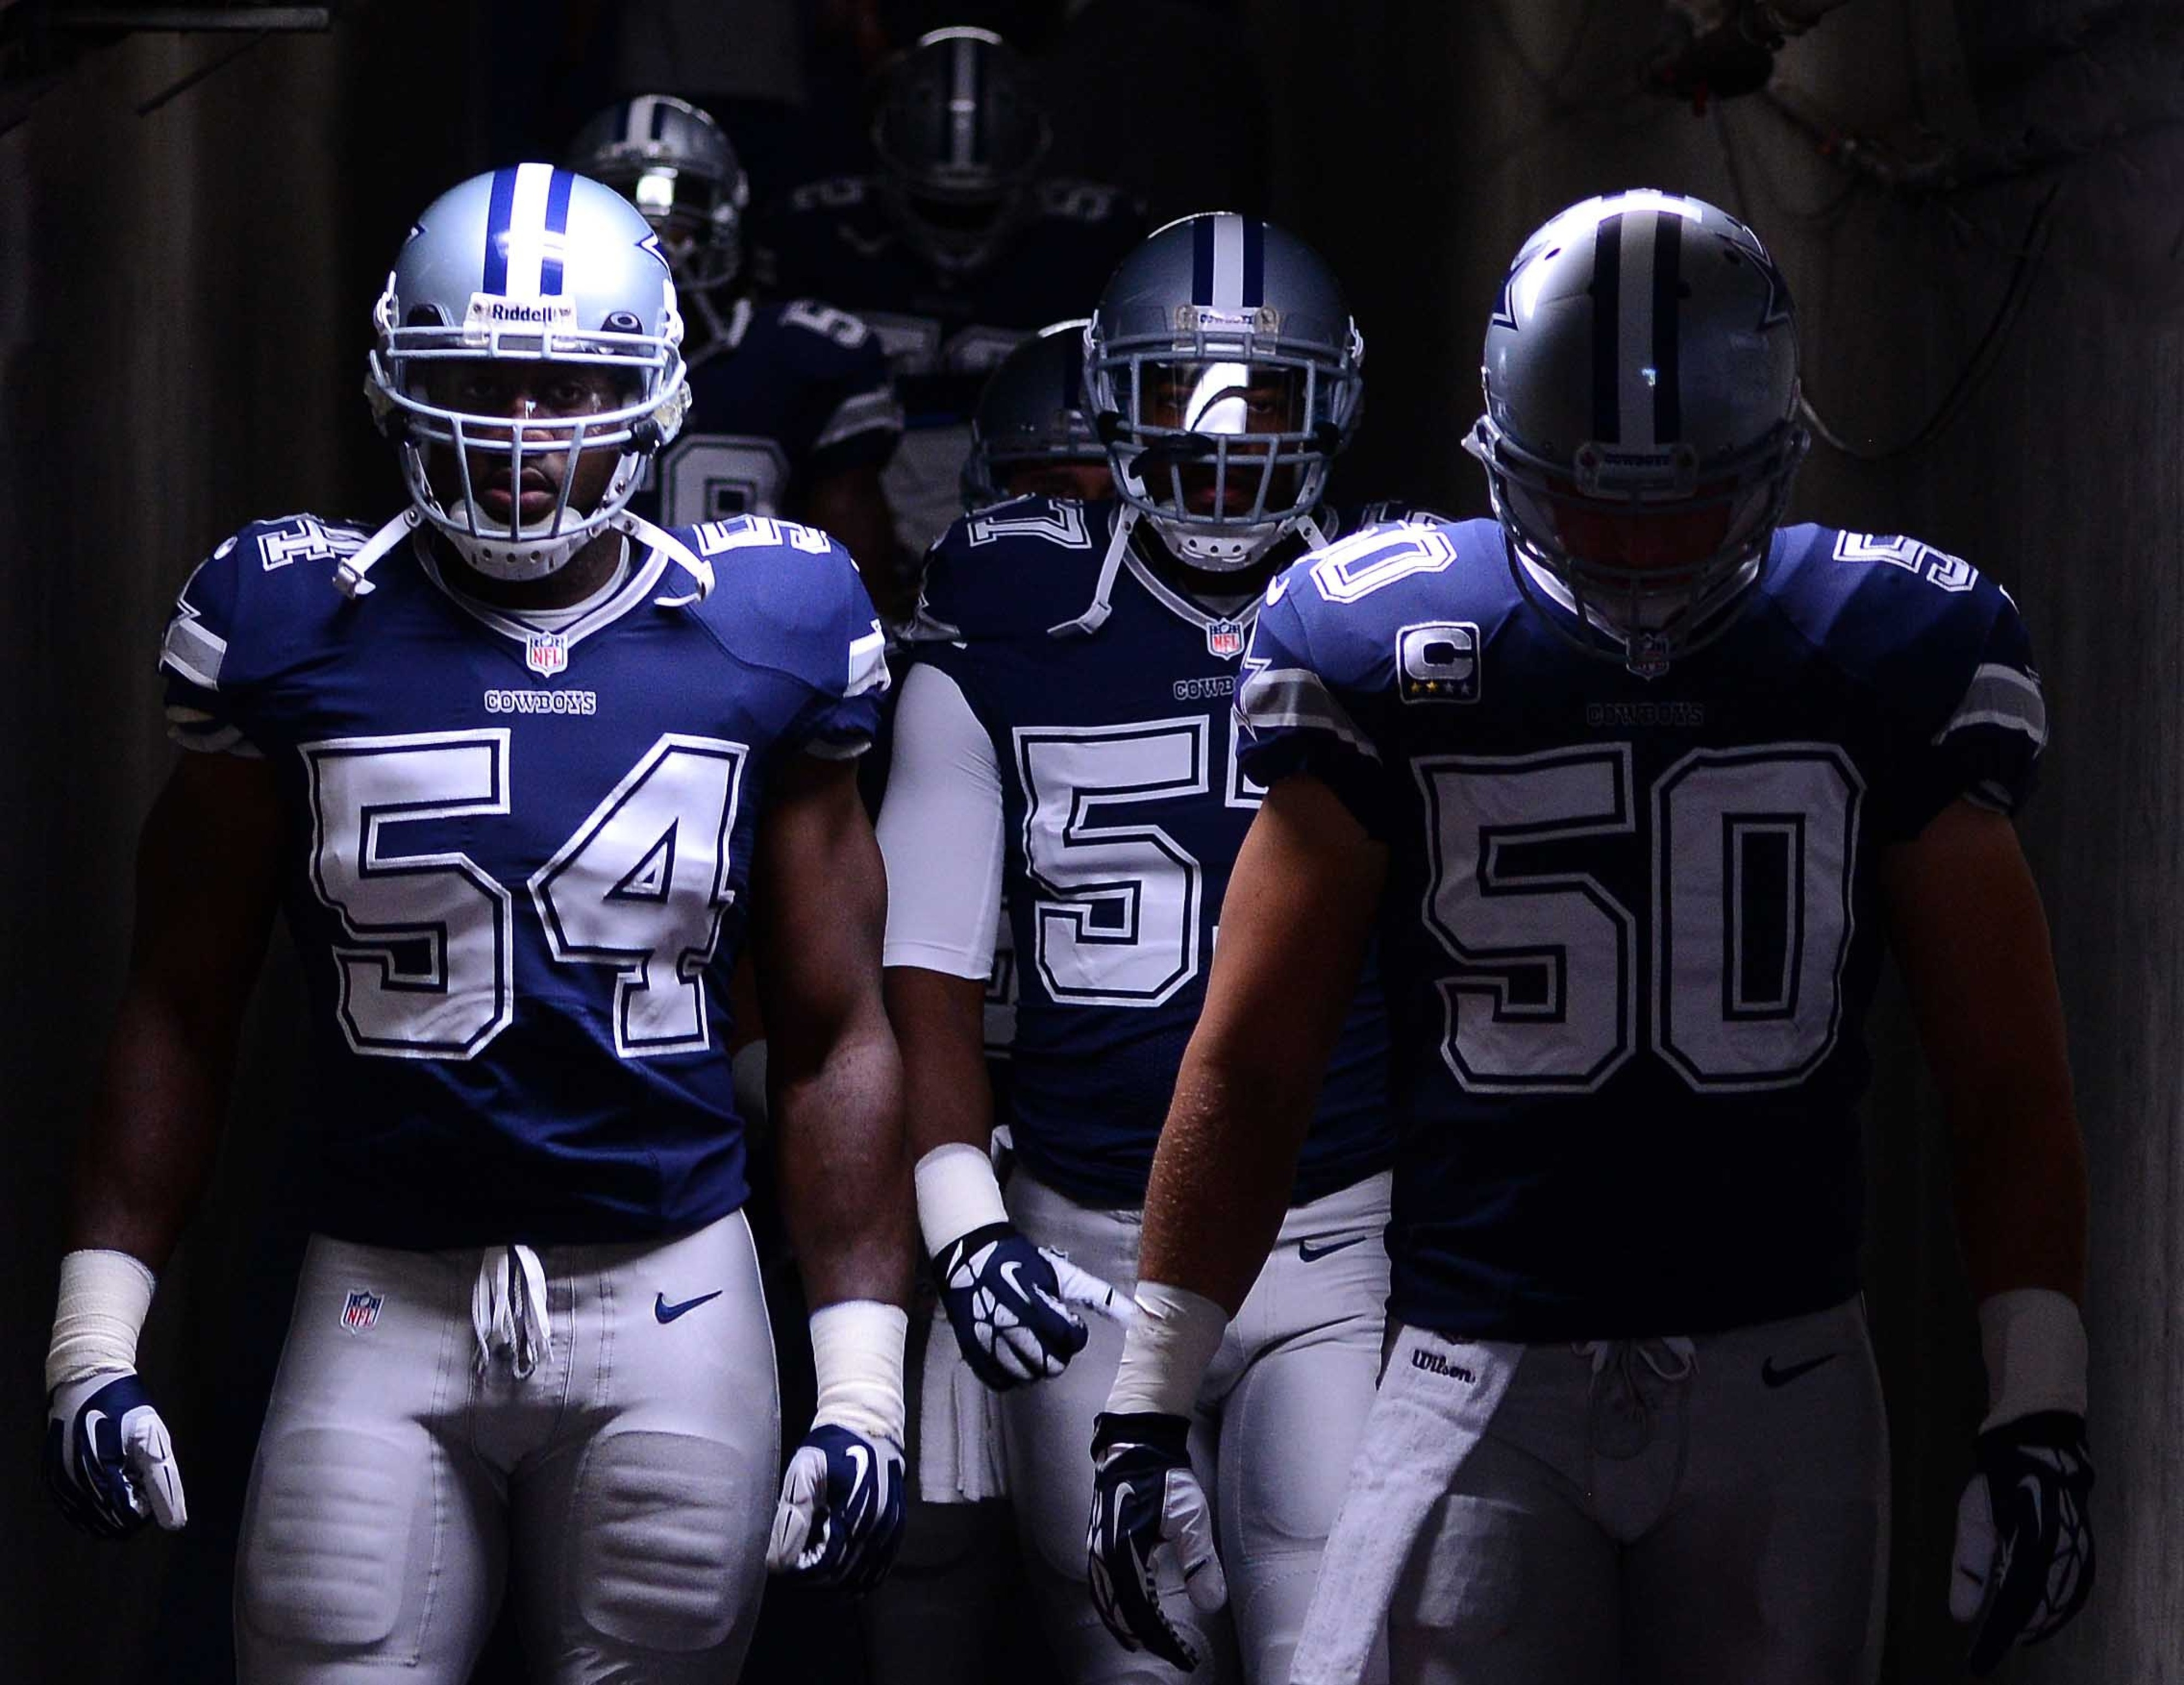 Carter (54) and Lee (50) are out for Dallas this Sunday.